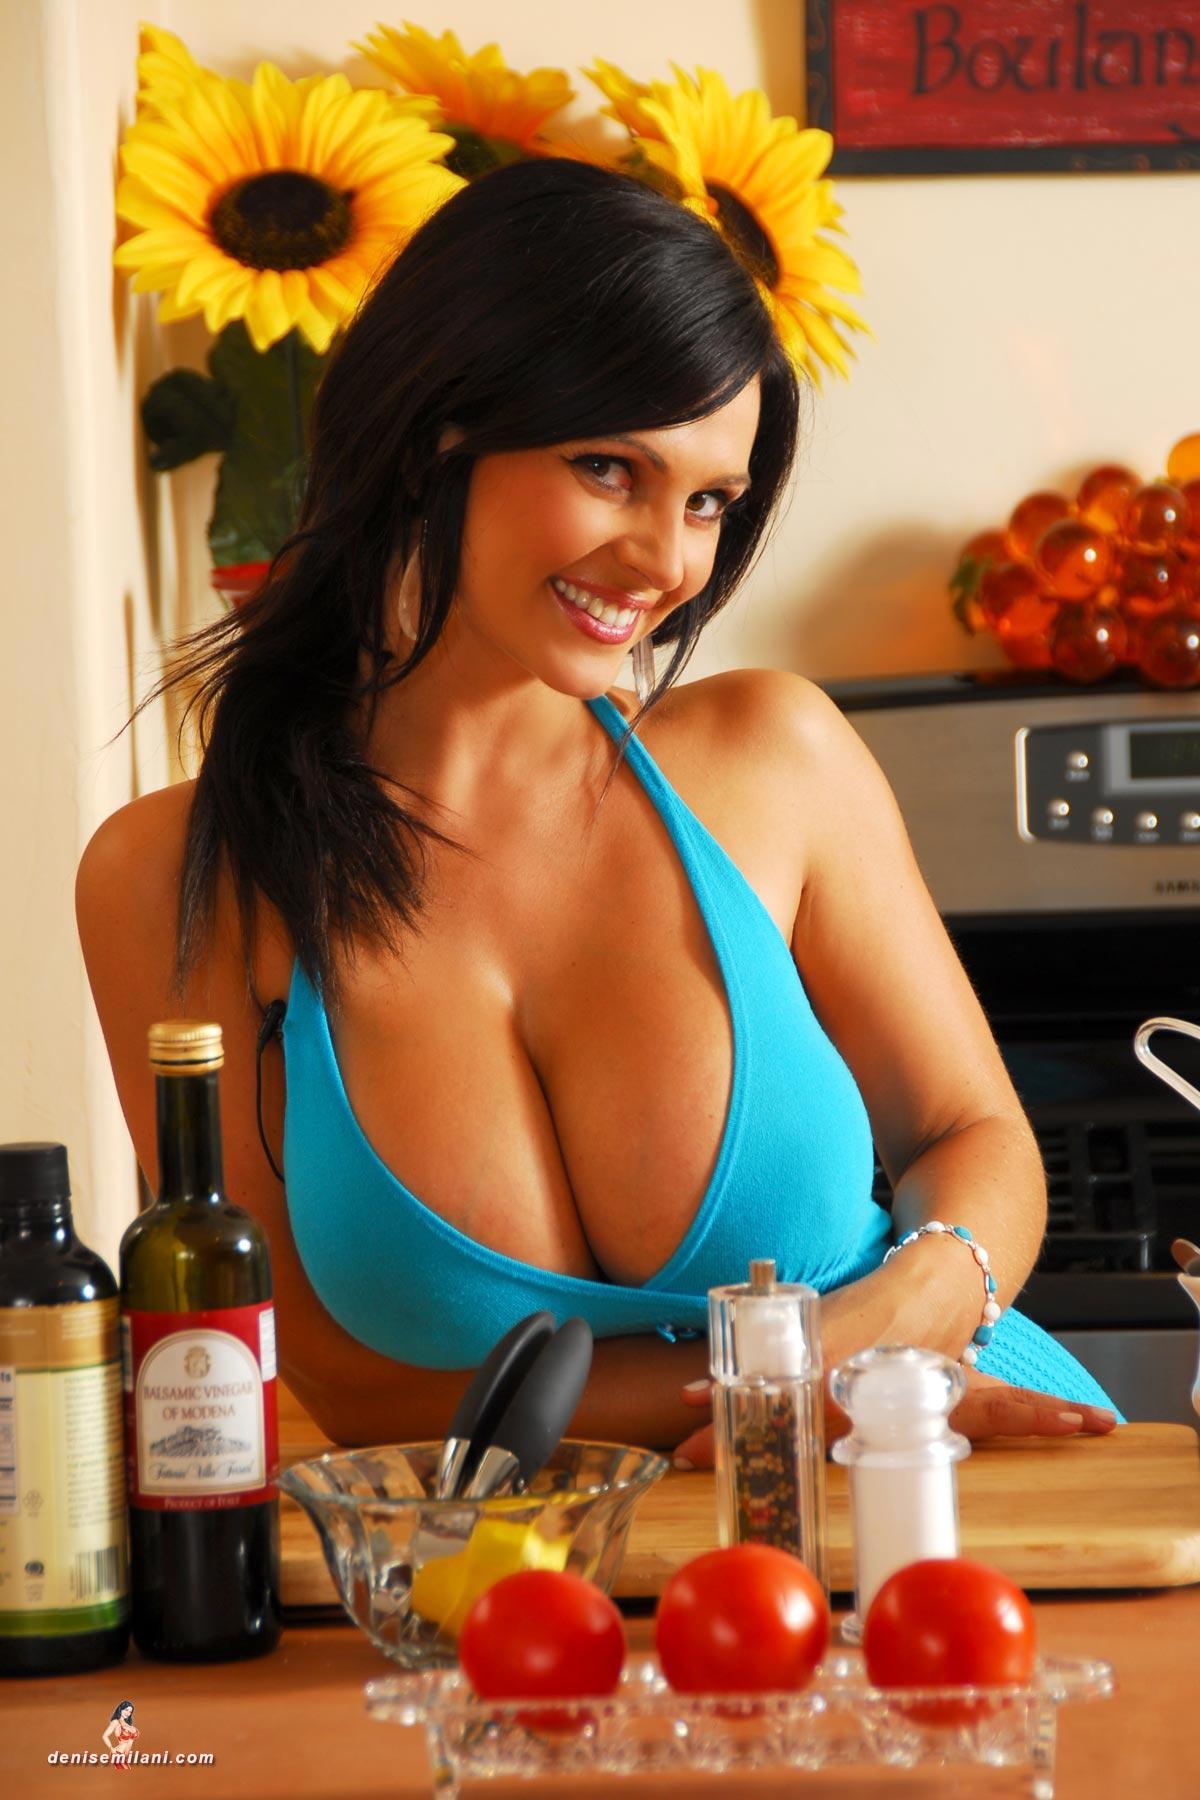 denise-milani-cooking-in-the-kitchen008